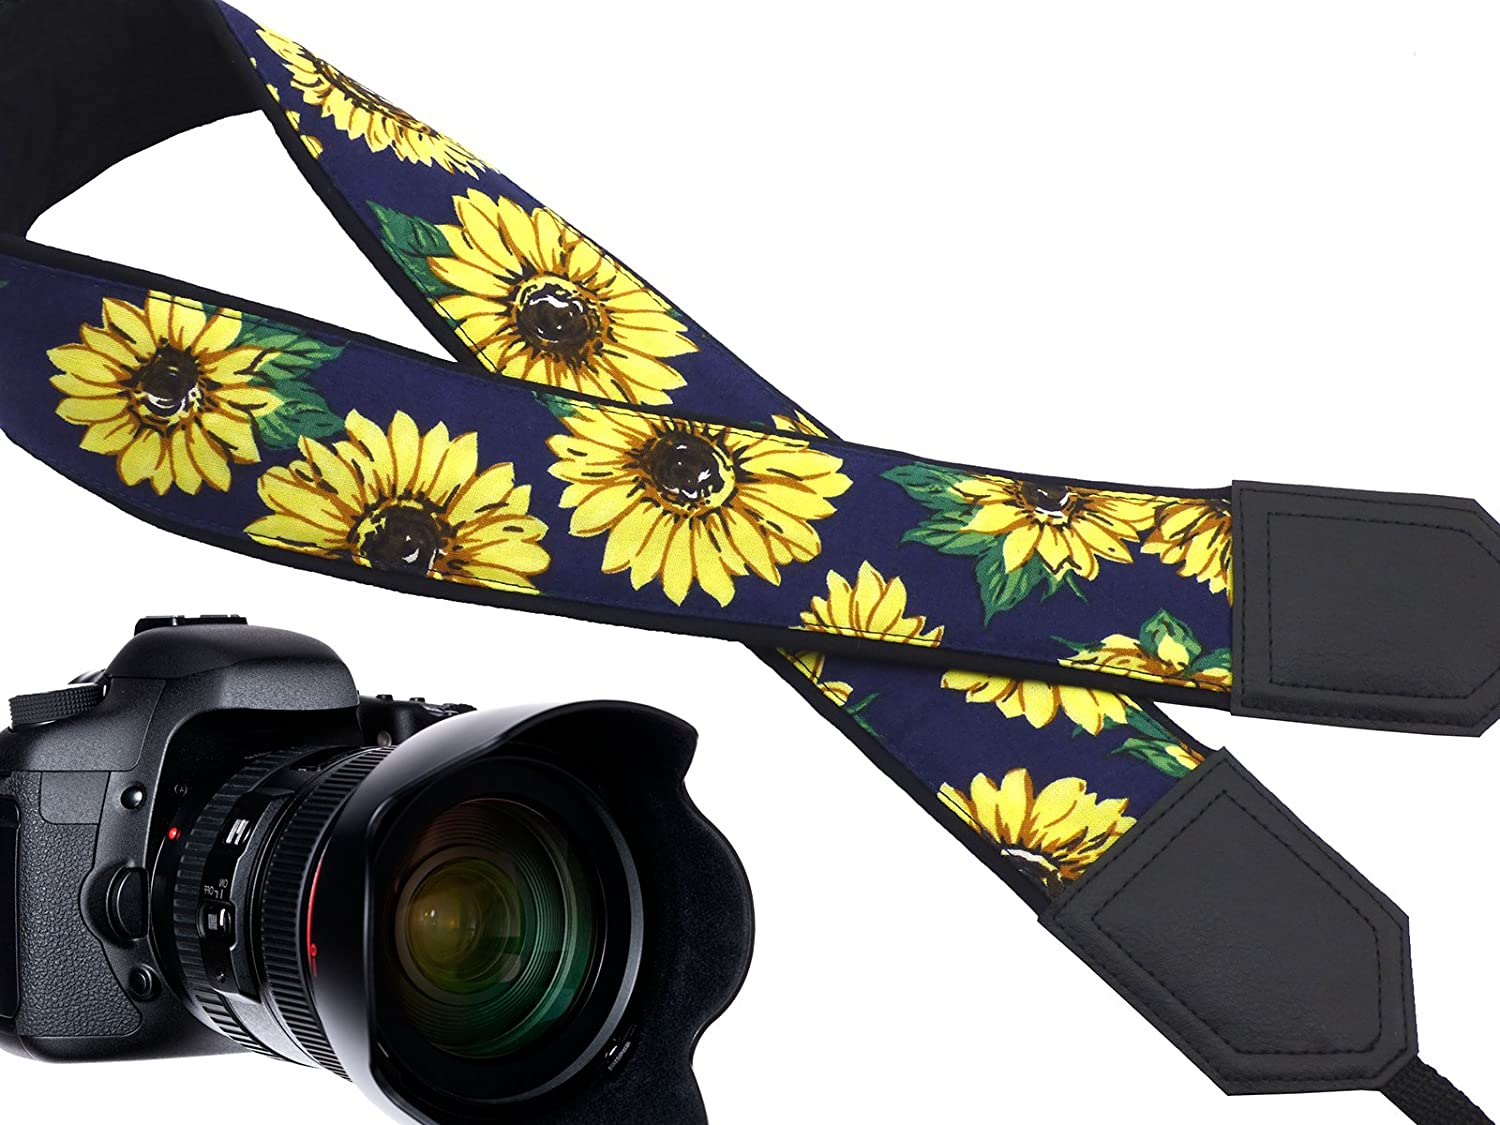 Adjustable InTePro Camera Strap with Sunflowers Design Light Weight /& Well Padded Camera Sling Yellow Flowers DSLR//SLR /& Mirrorless Camera Neck /& Shoulder Strap Durable